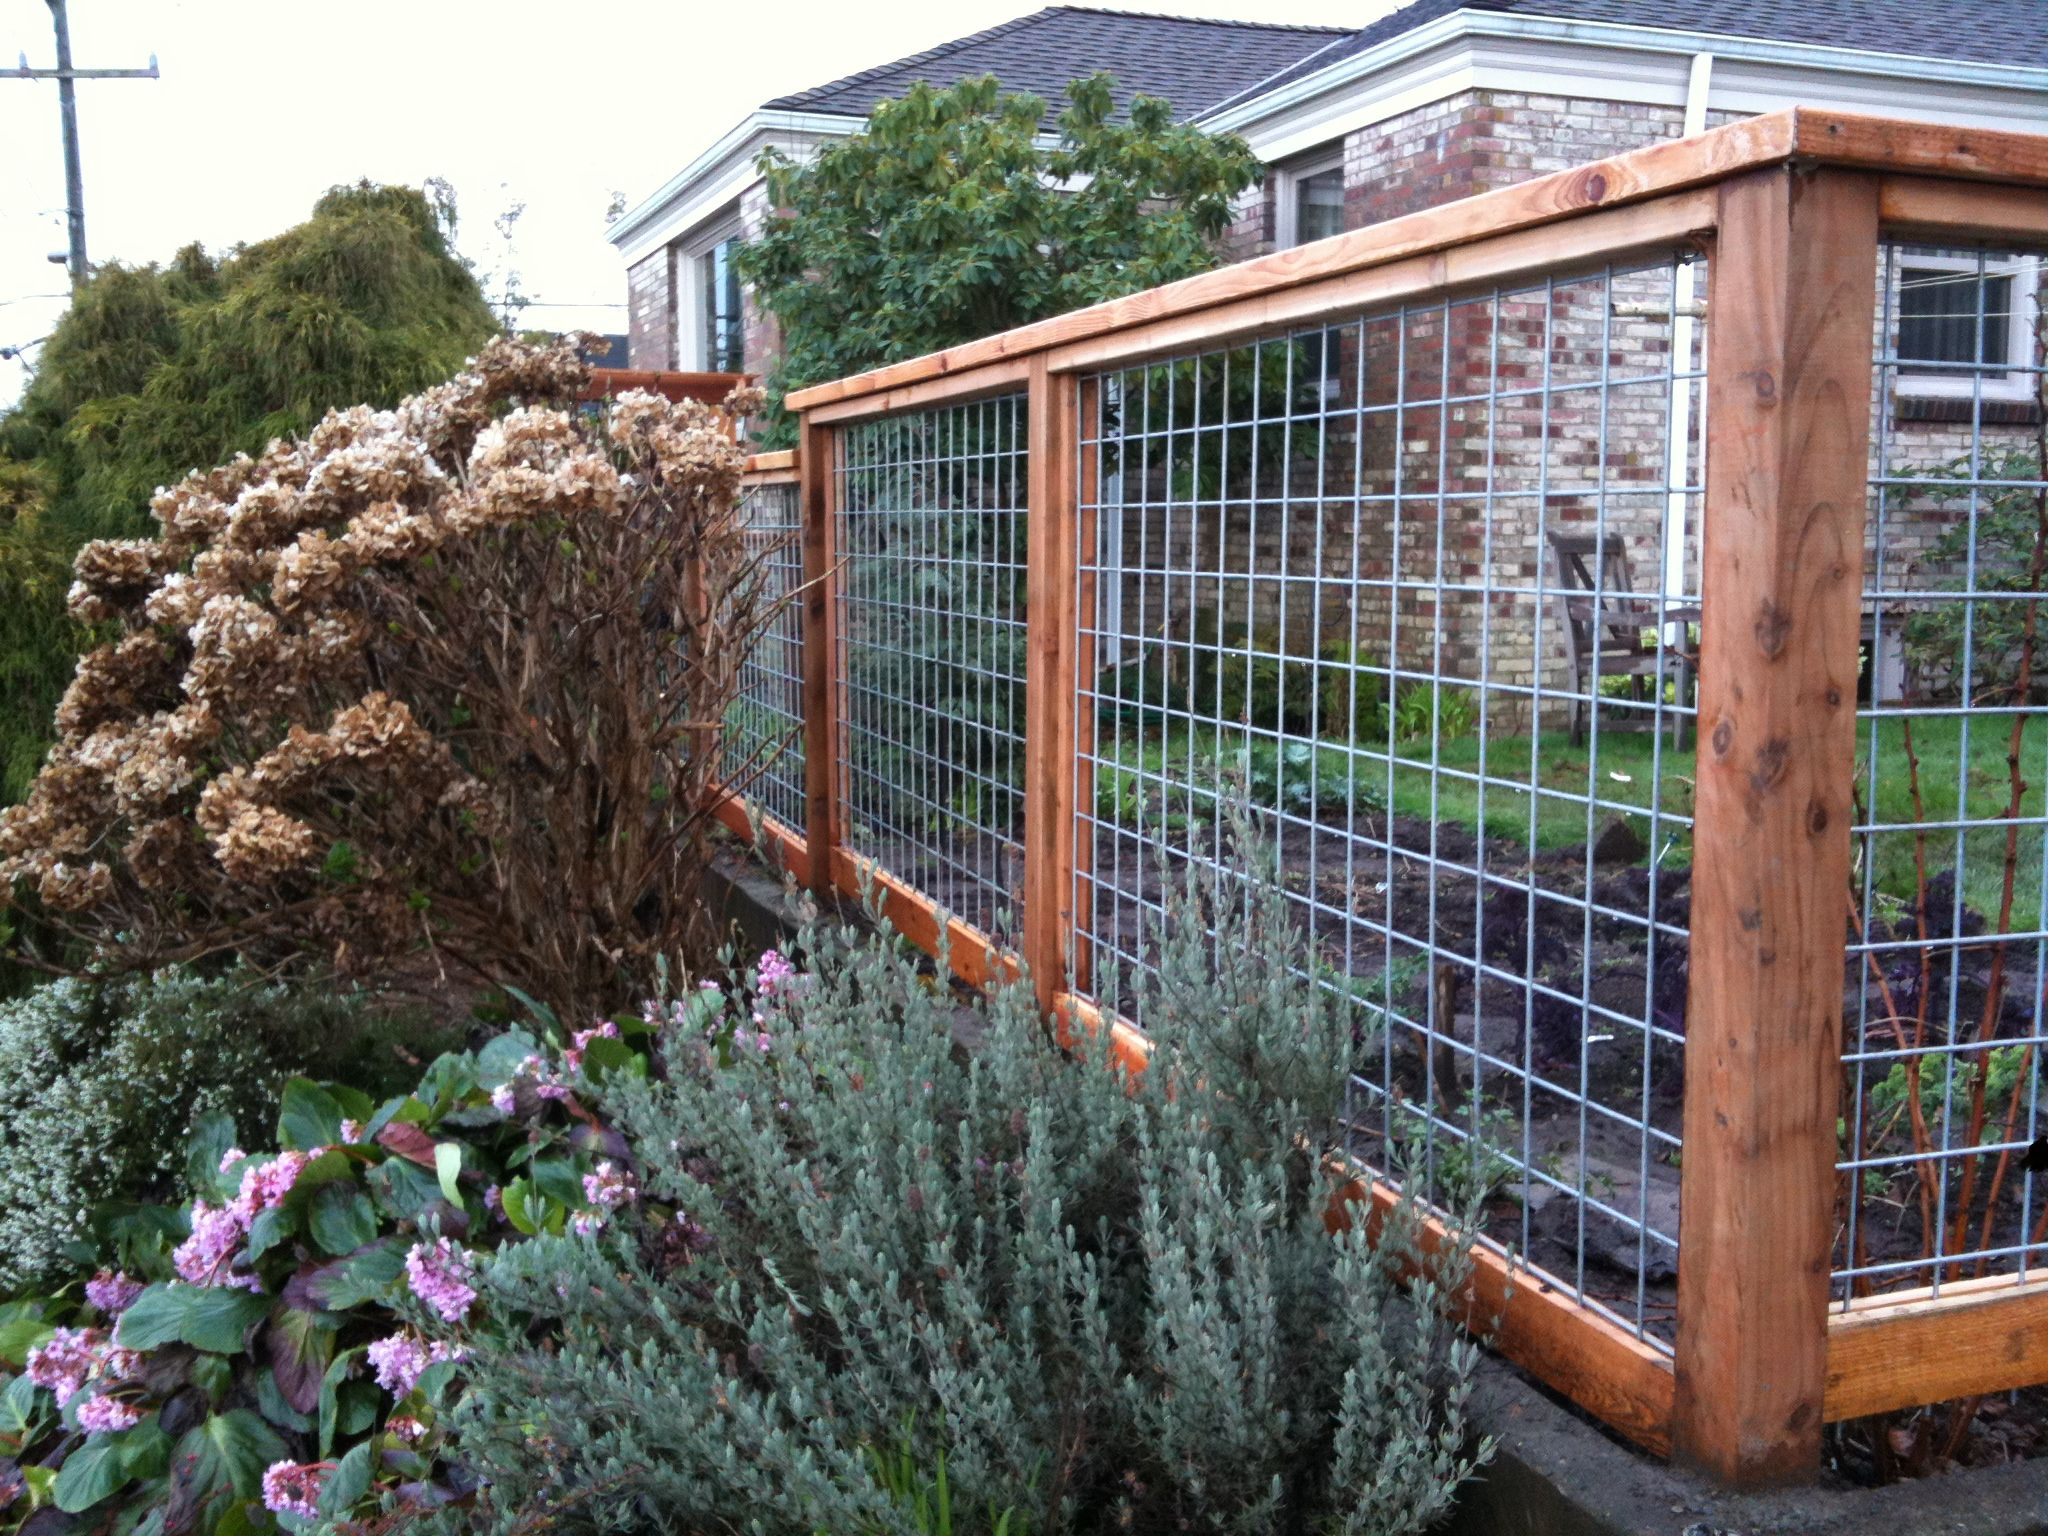 17 Awesome Hog Wire Fence Design Ideas For Your Backyard – Garden Fence Plans